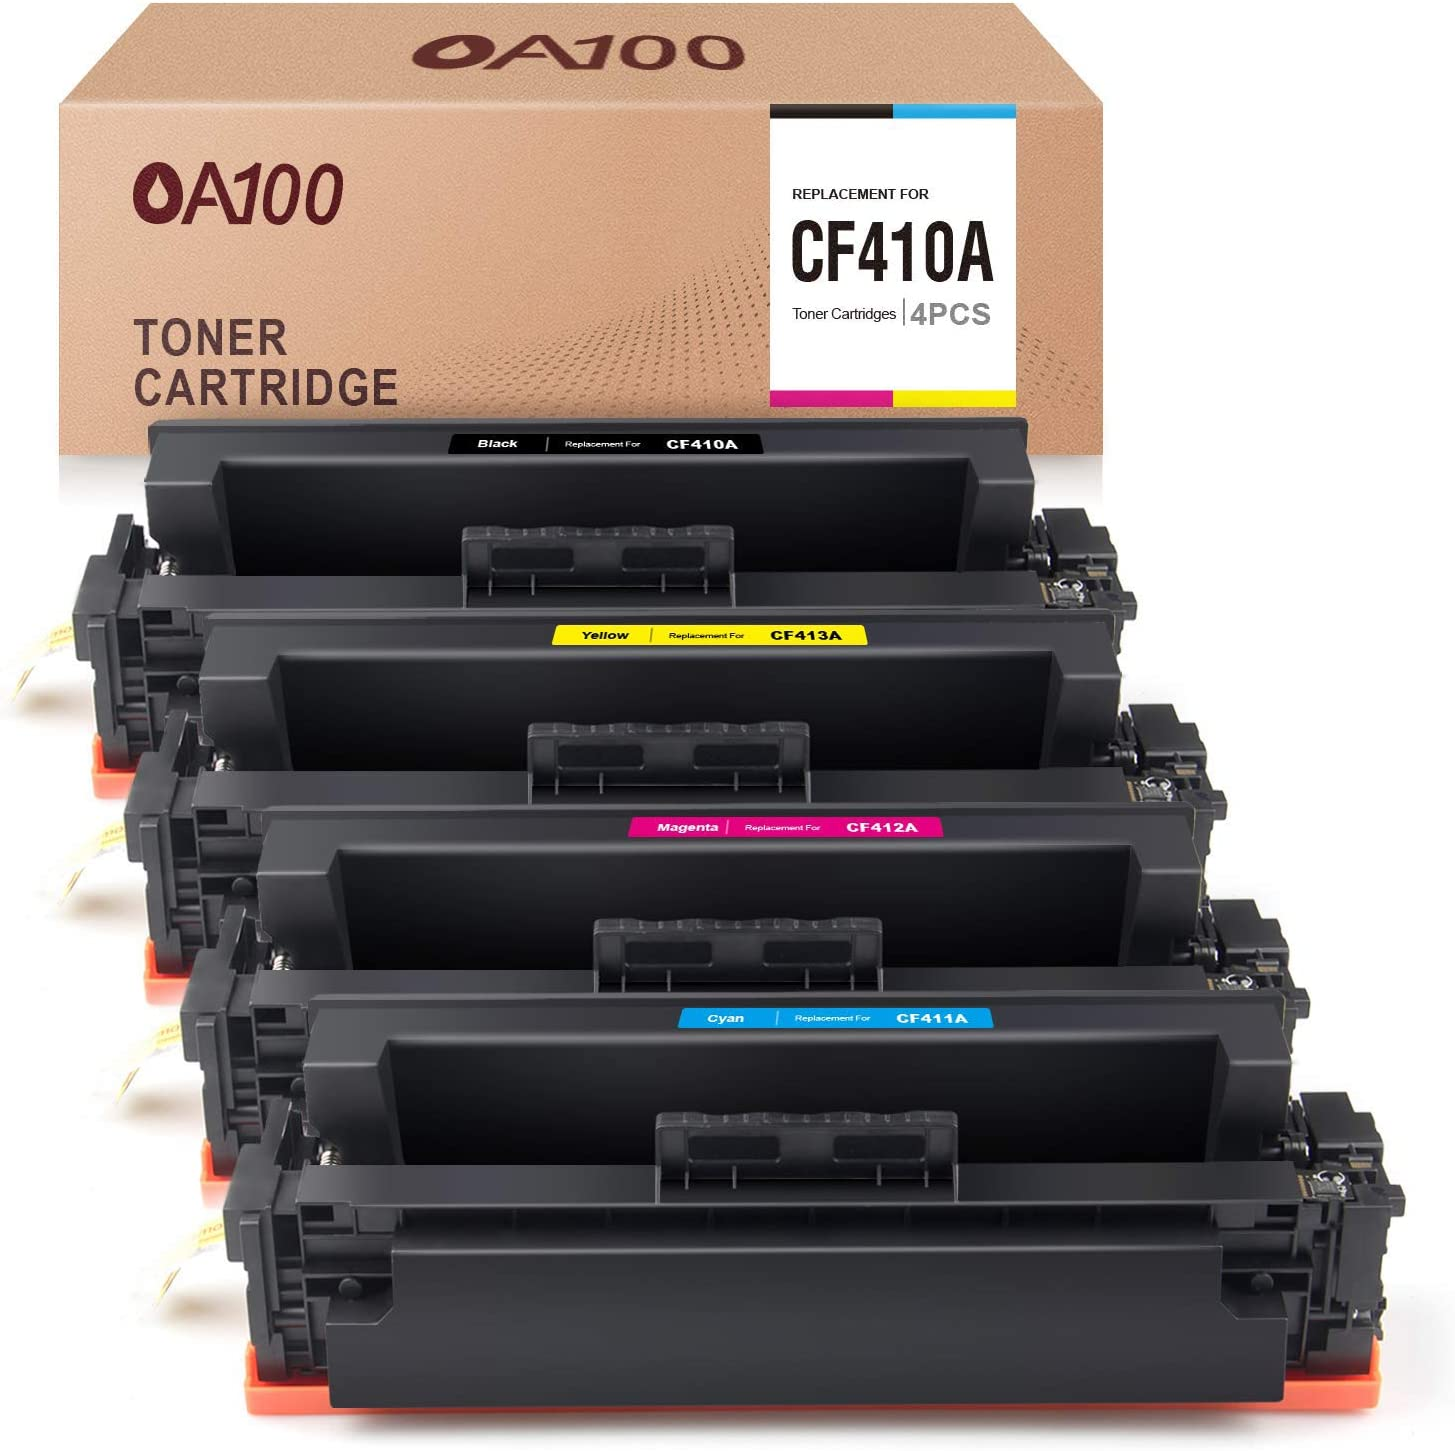 OA100 Compatible Toner Cartridge Replacement for HP 410A 410X CF410A CF410X CF411A CF412A CF413A - for HP Color Laserjet Pro MFP M477fnw M477fdw M477fdn Pro M452dw M452nw M452dn (4 Pack)